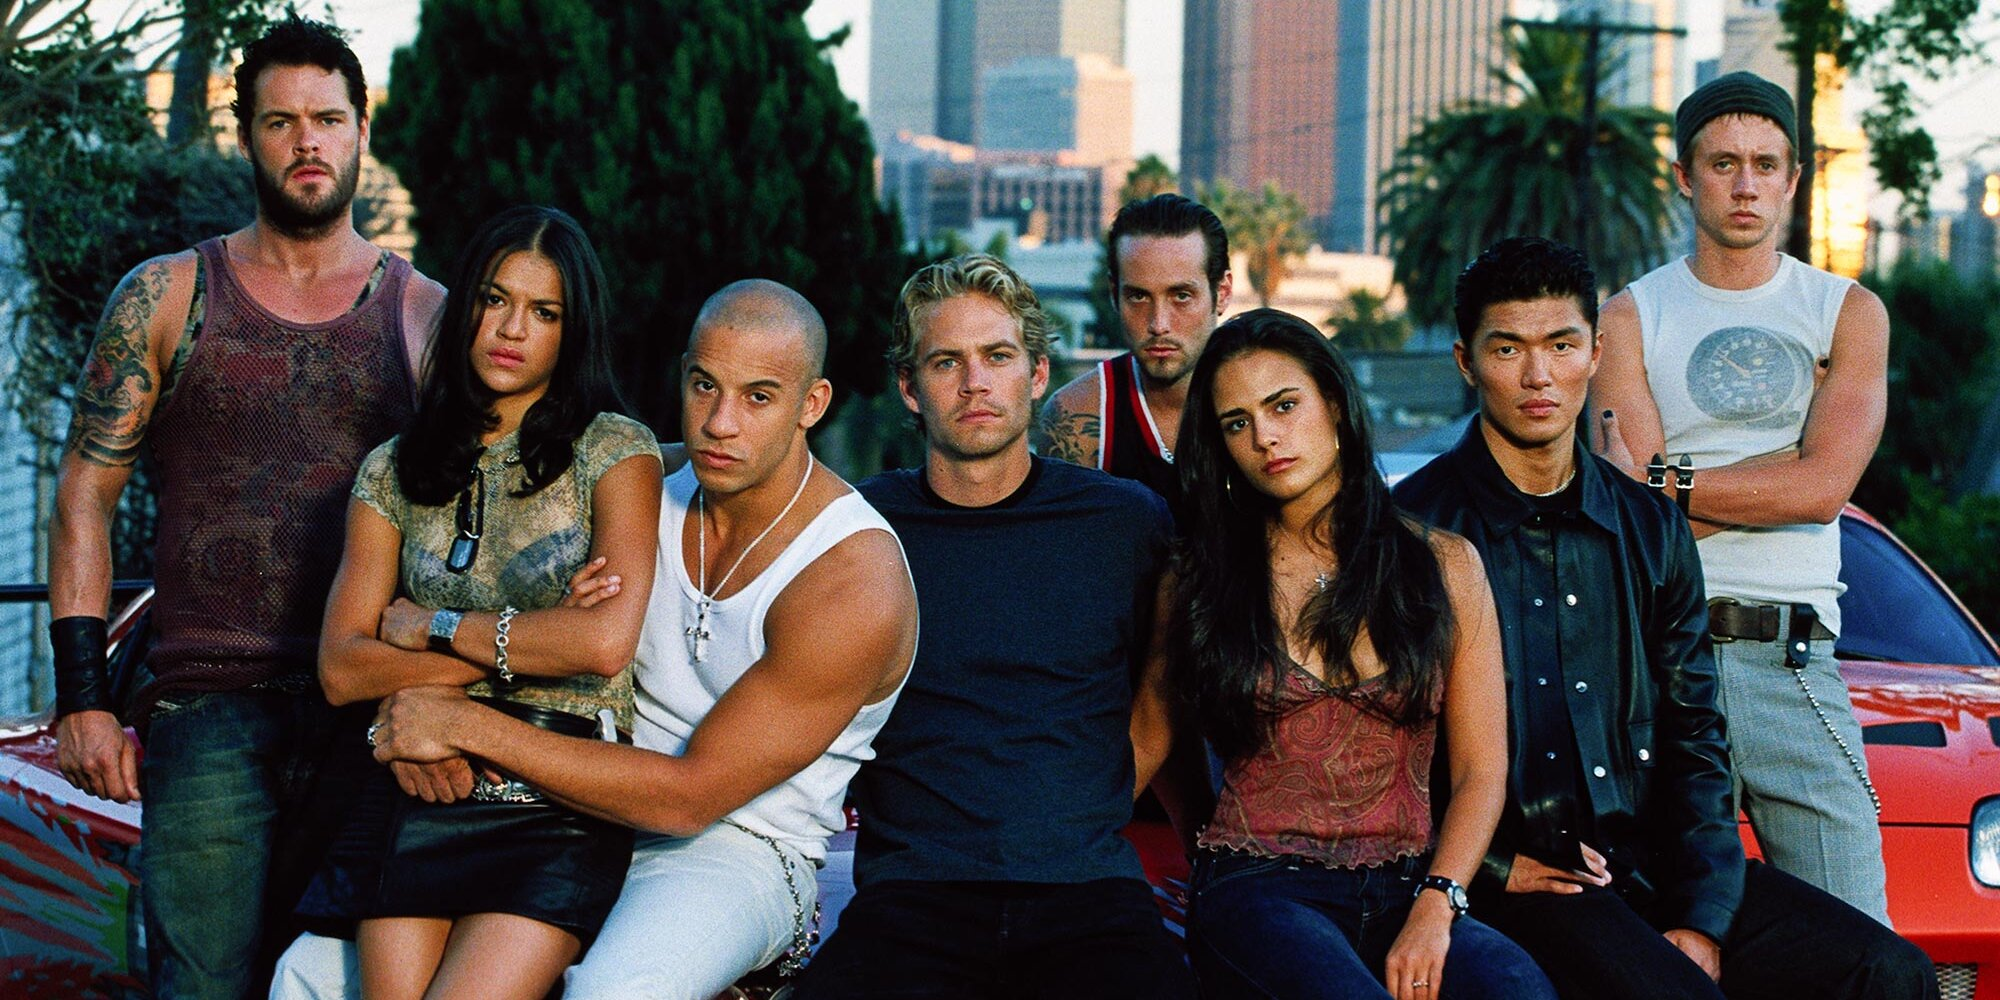 'F---, let's go do it': An oral history of 'The Fast and the Furious'